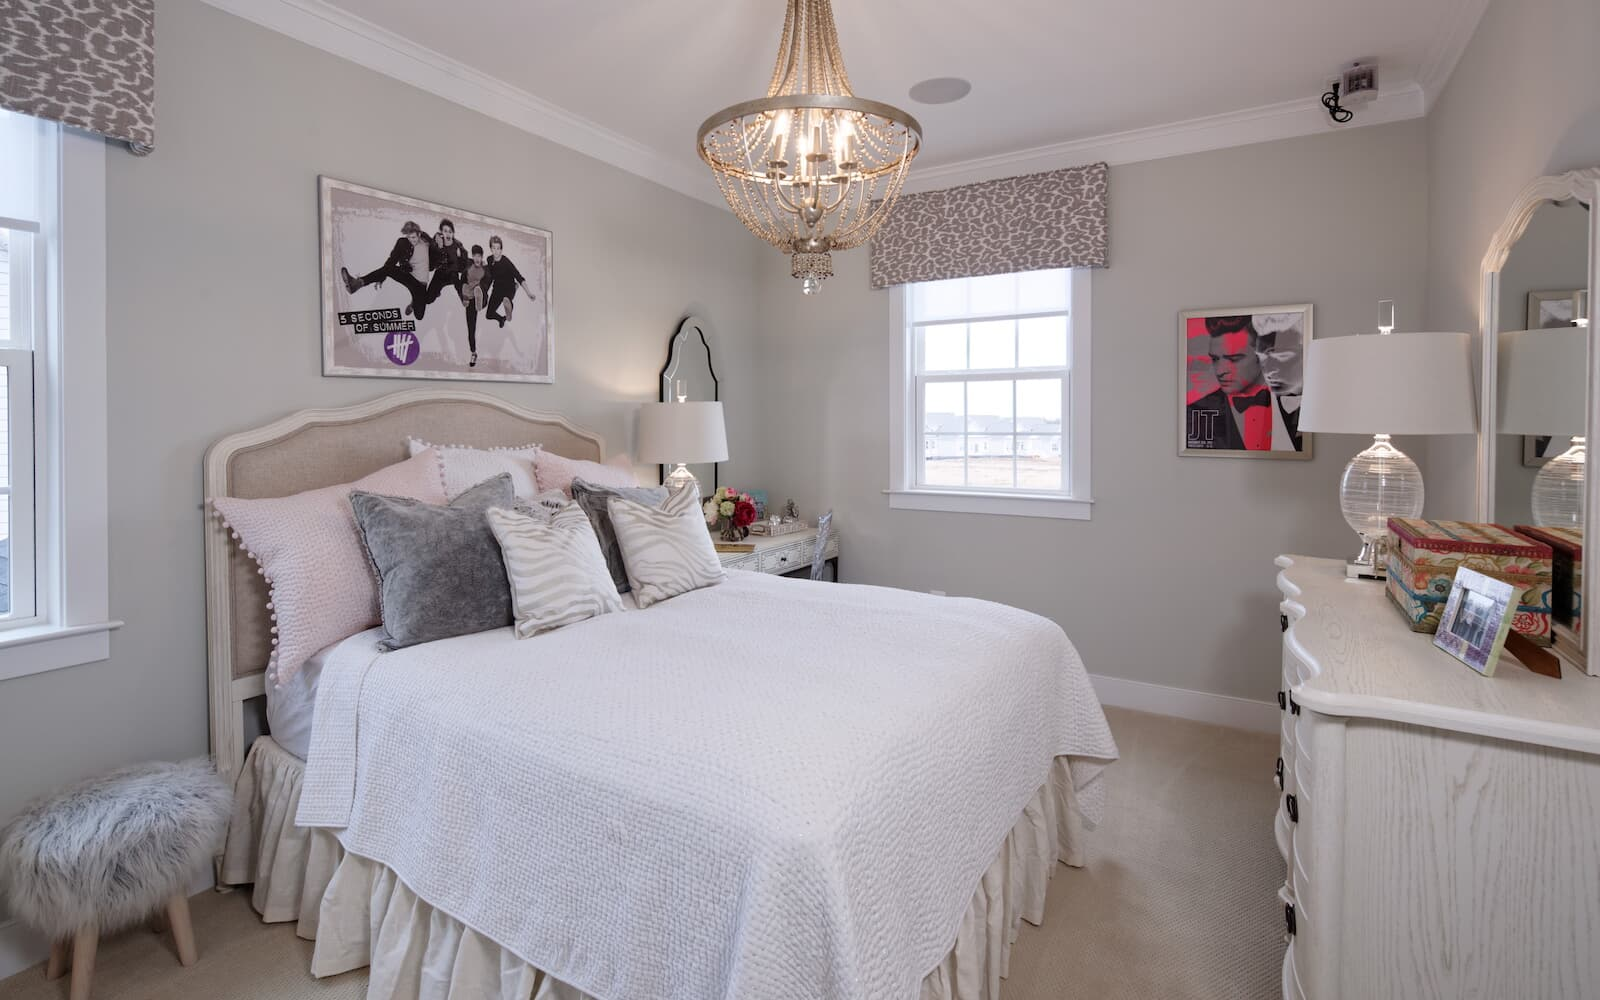 Kensington-bedroom-single-family-home-bristow-va-avendale-brookfield-residential